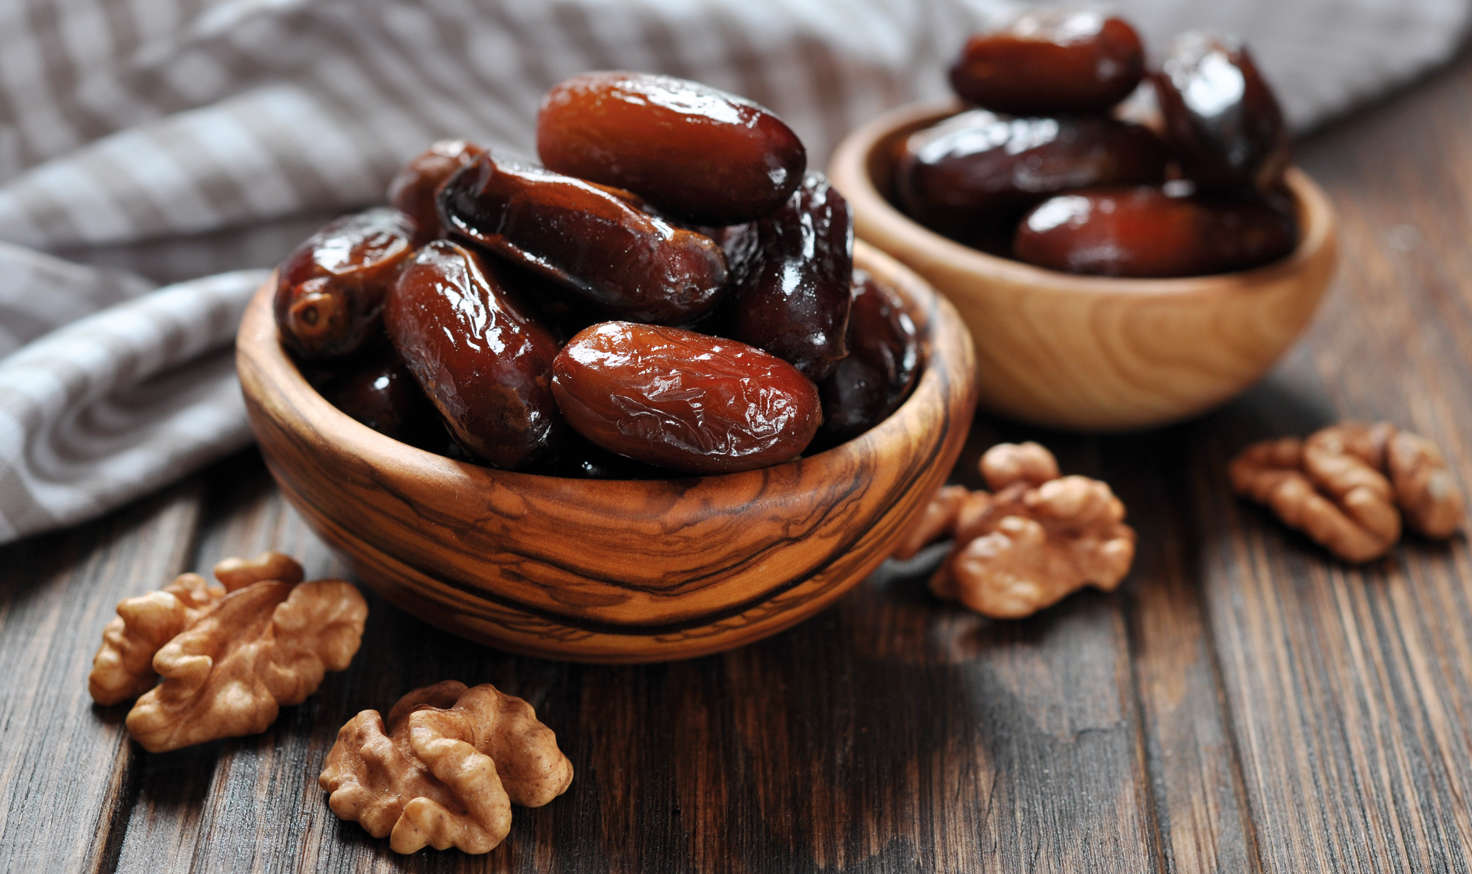 Organic Pitted Deglet Noor Dates Background Image